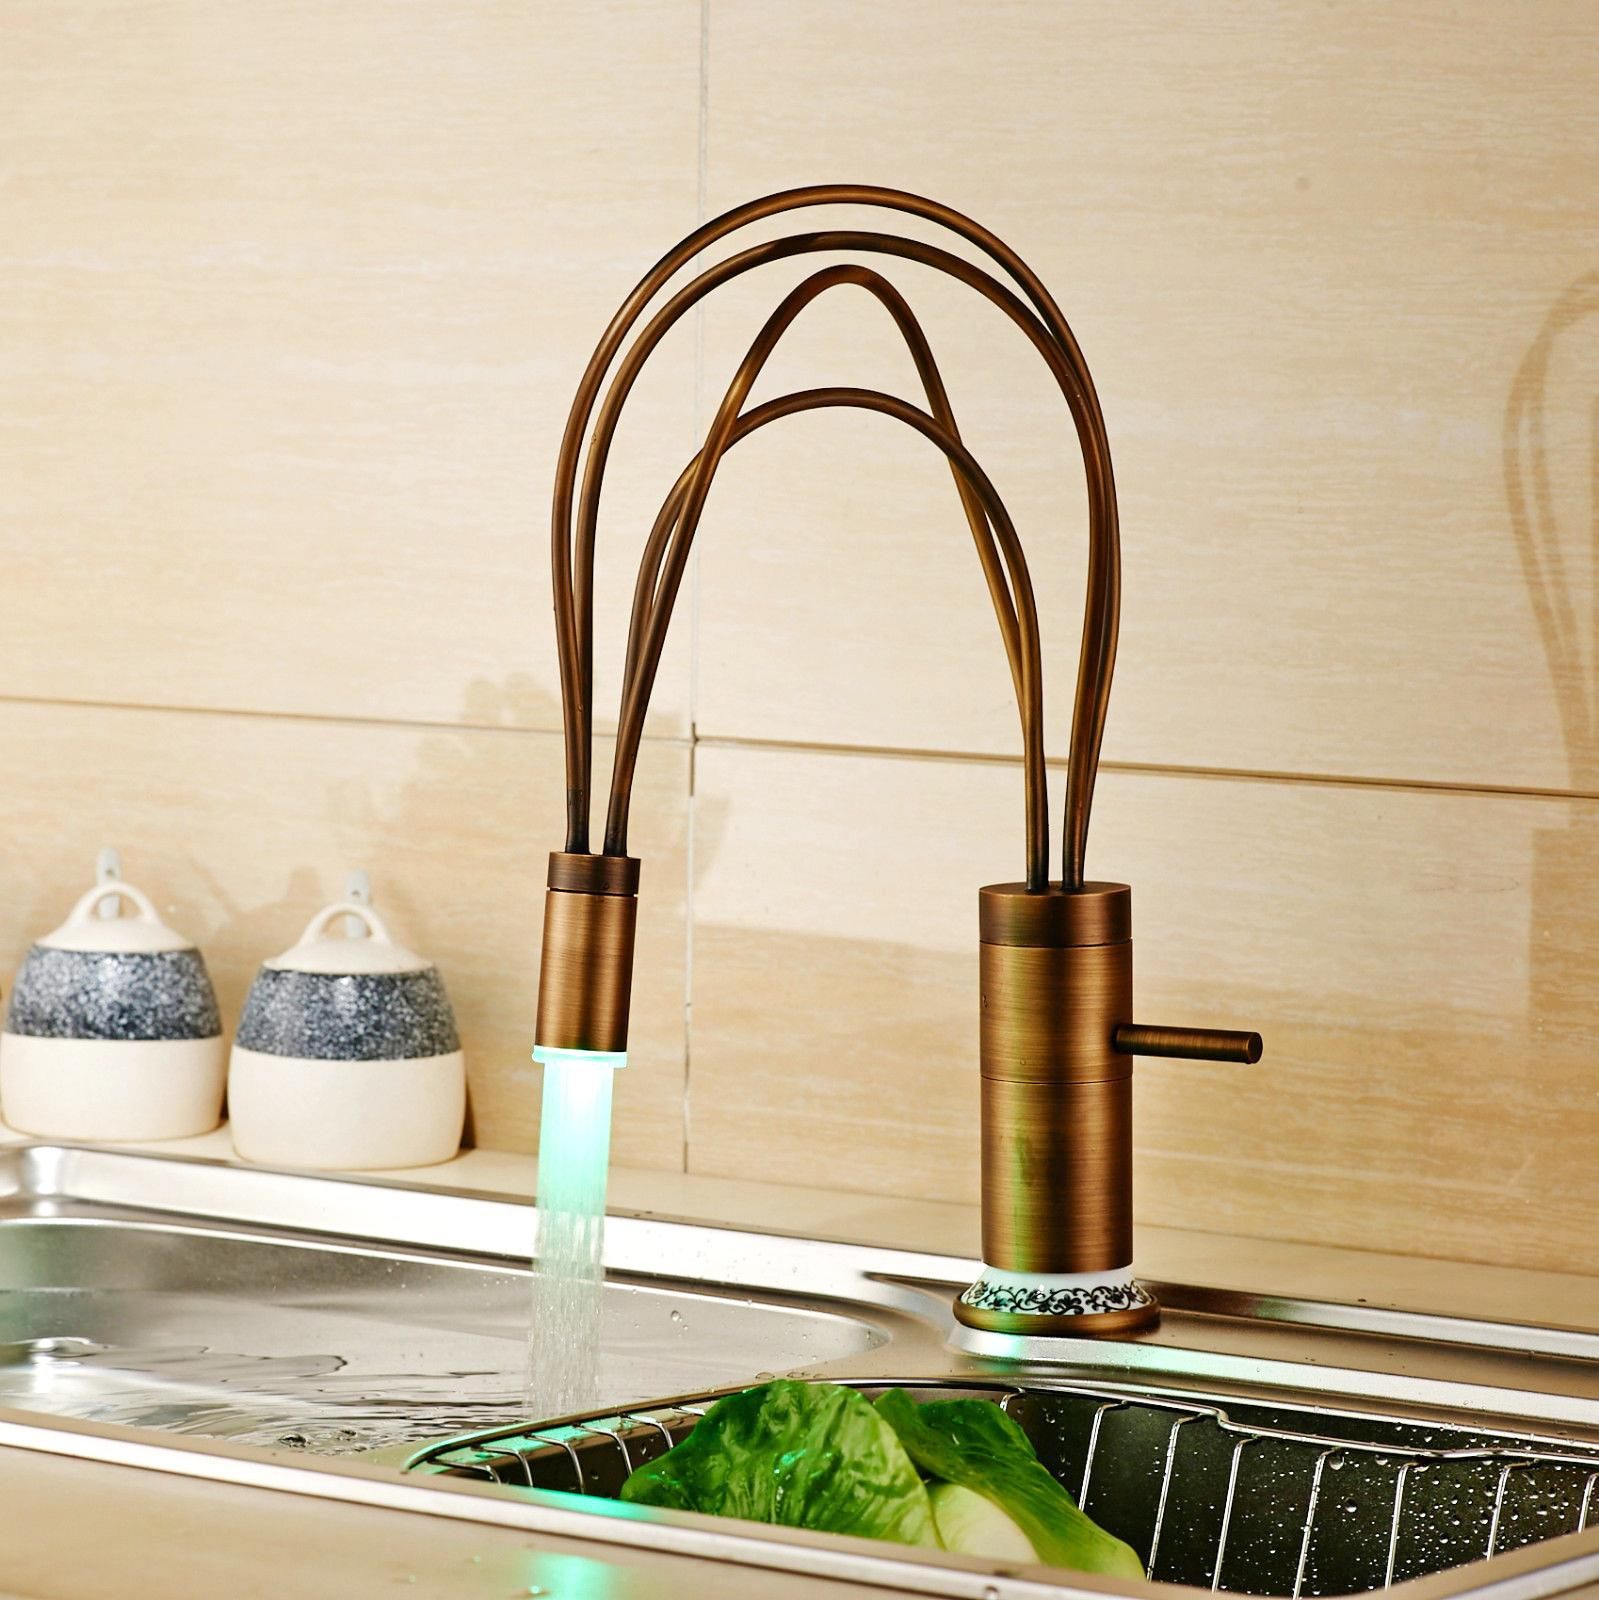 2018 antique brass kitchen sink faucet flexible kitchen taps with hot and cold water led light deck mount from gonglangno1 120 61 dhgate com